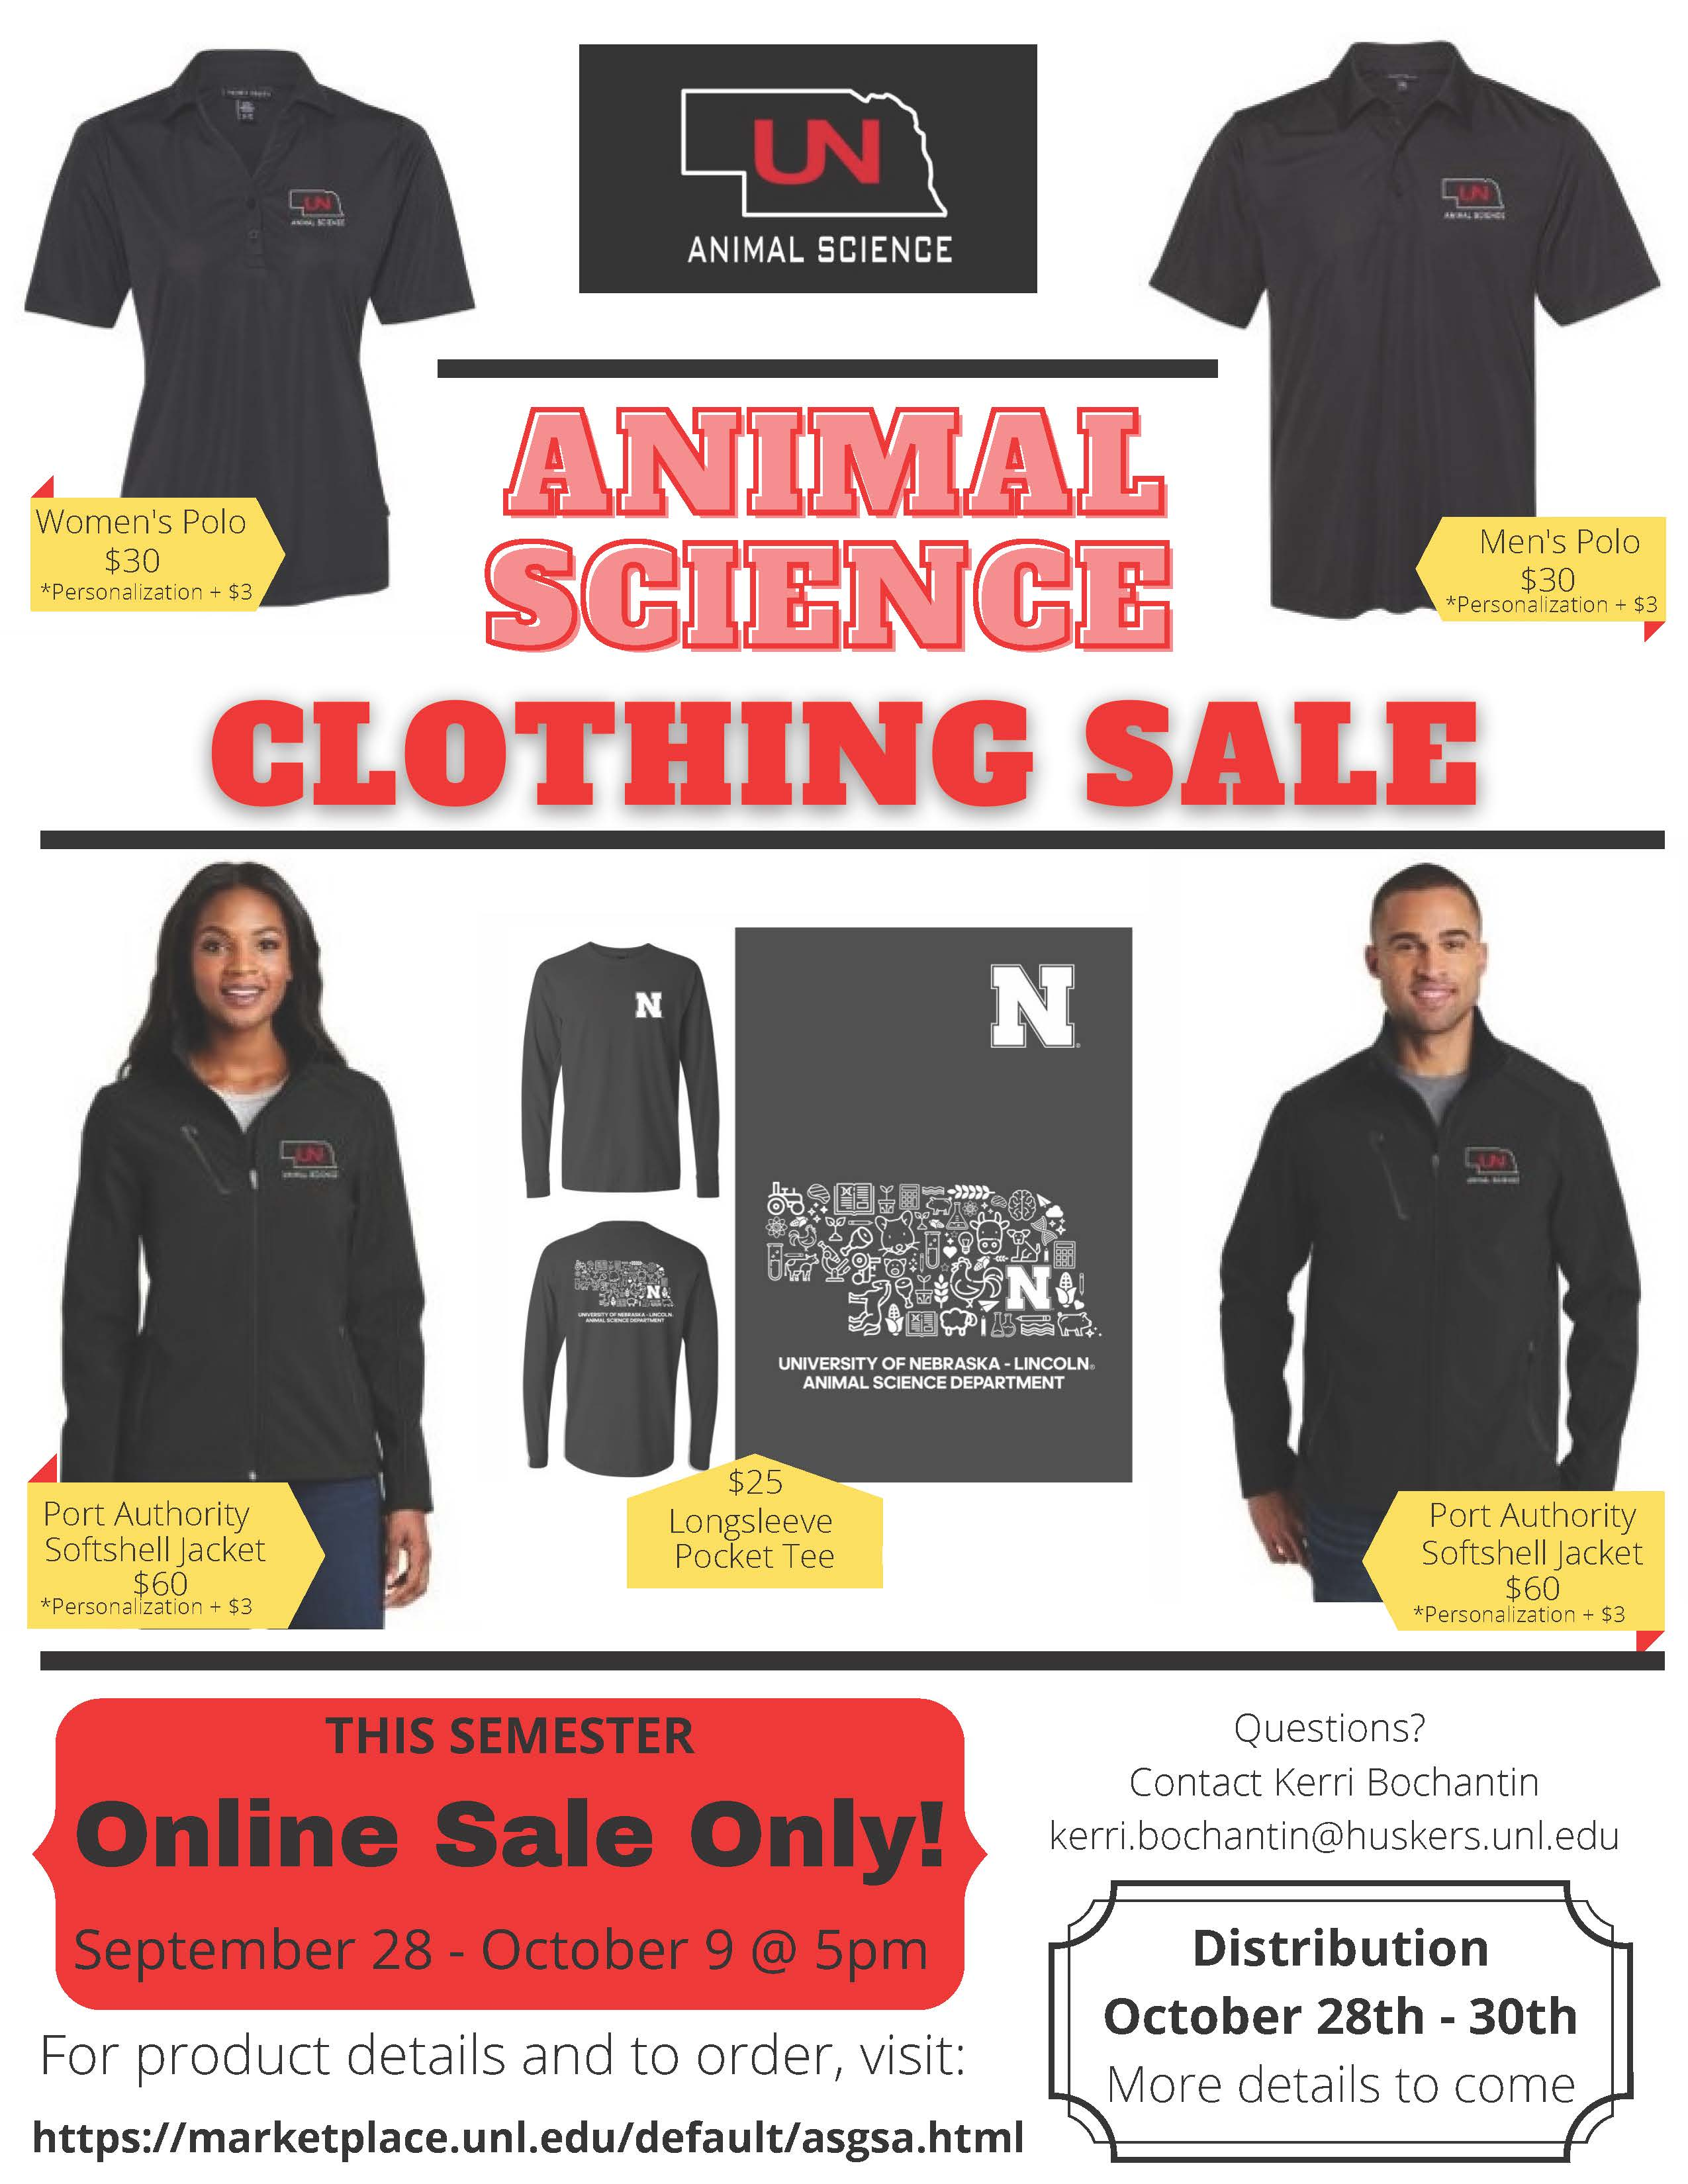 Flyer showing clothing options